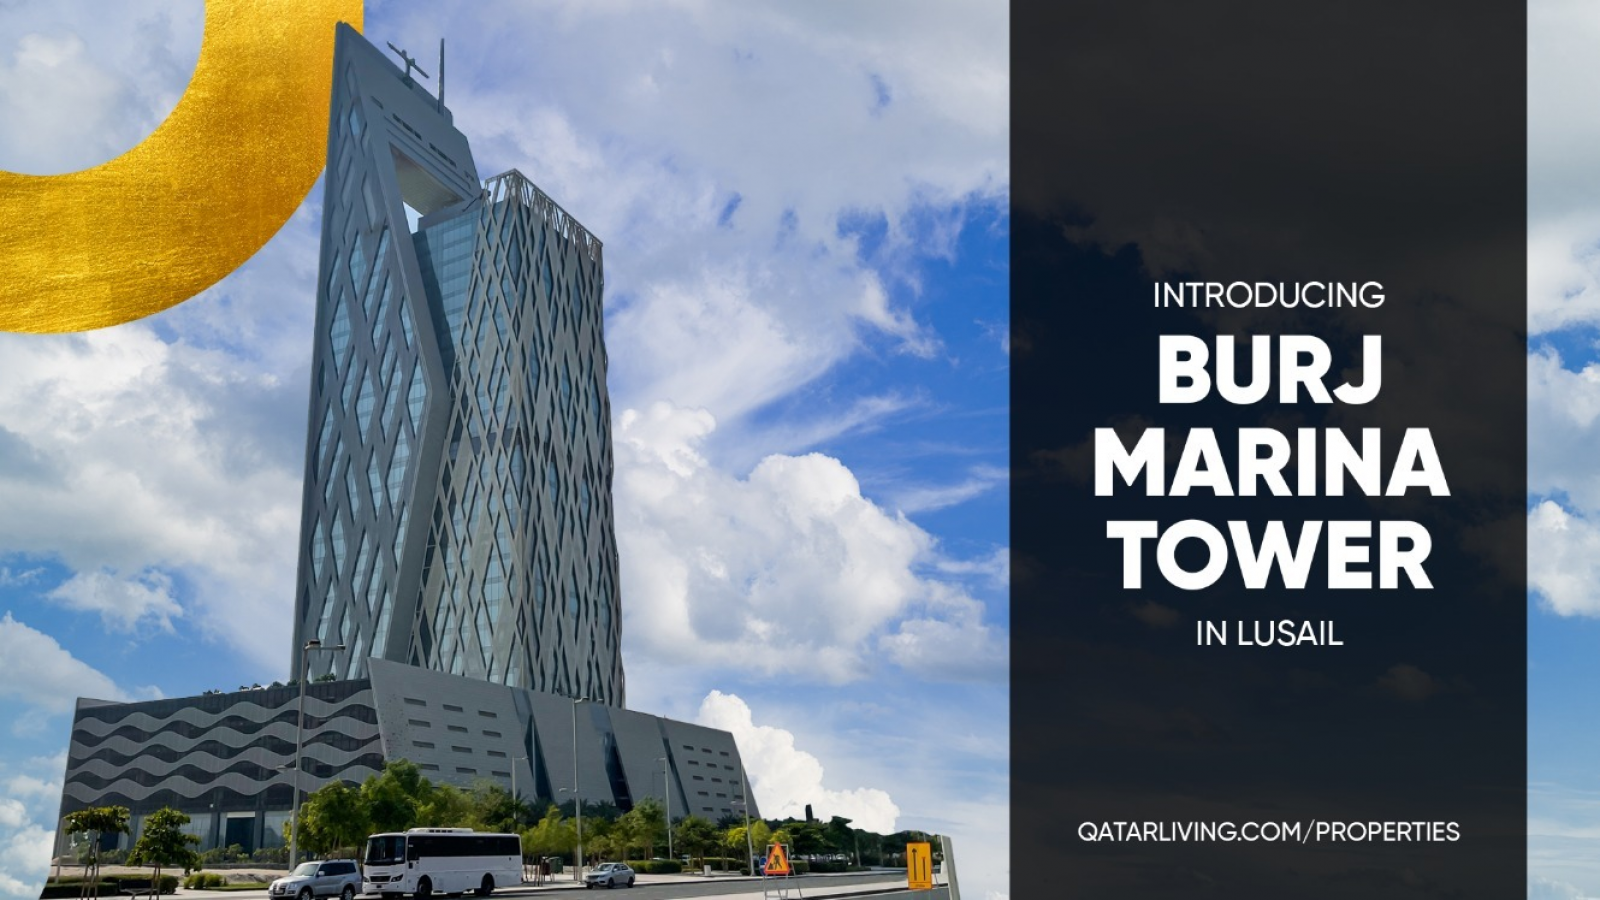 Take your office to new heights at Burj Marina Tower in Lusail, Qatar's newest property hotspot.